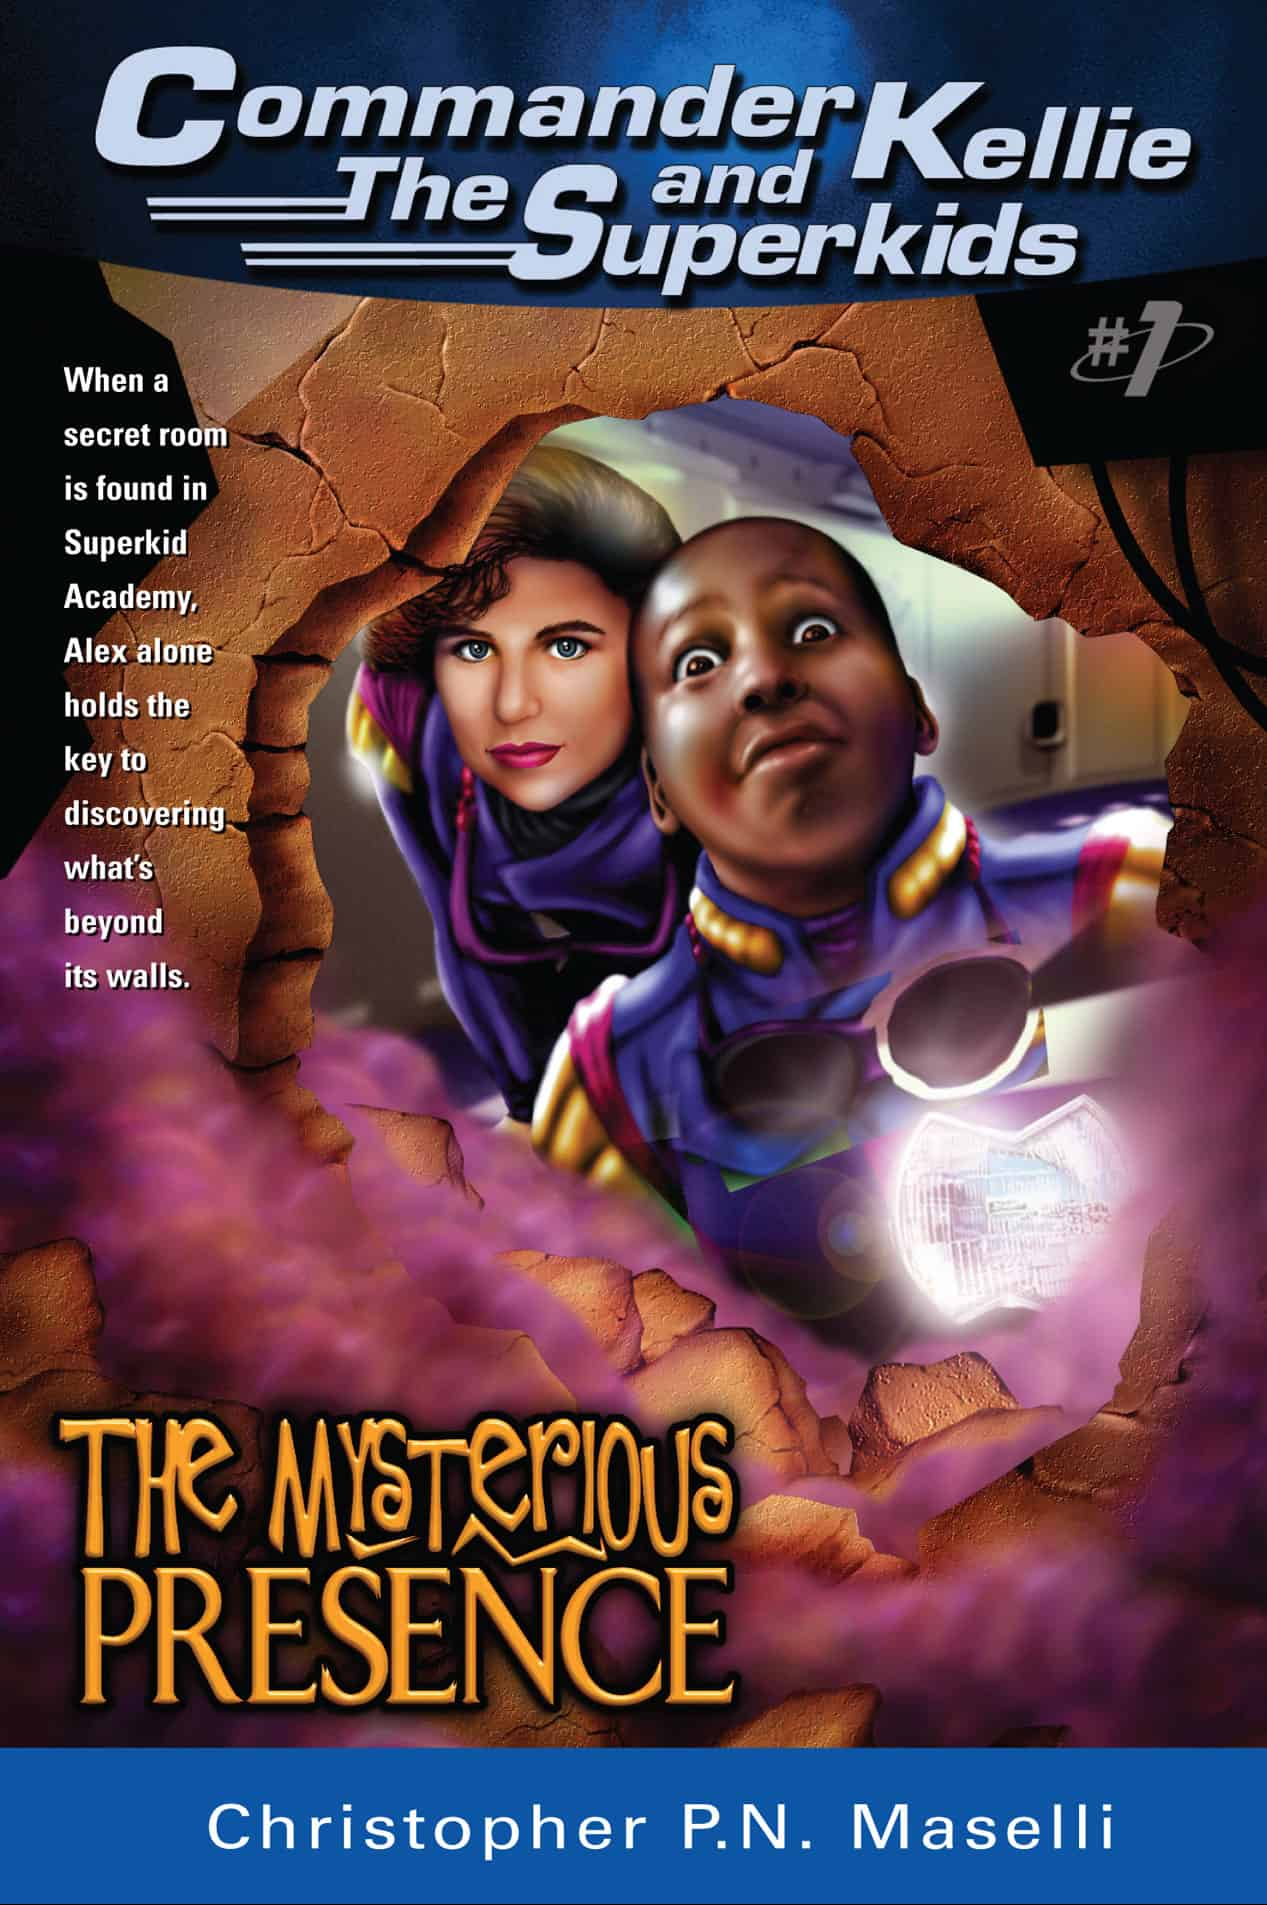 The Mysterious Presence by Christopher PN Maselli